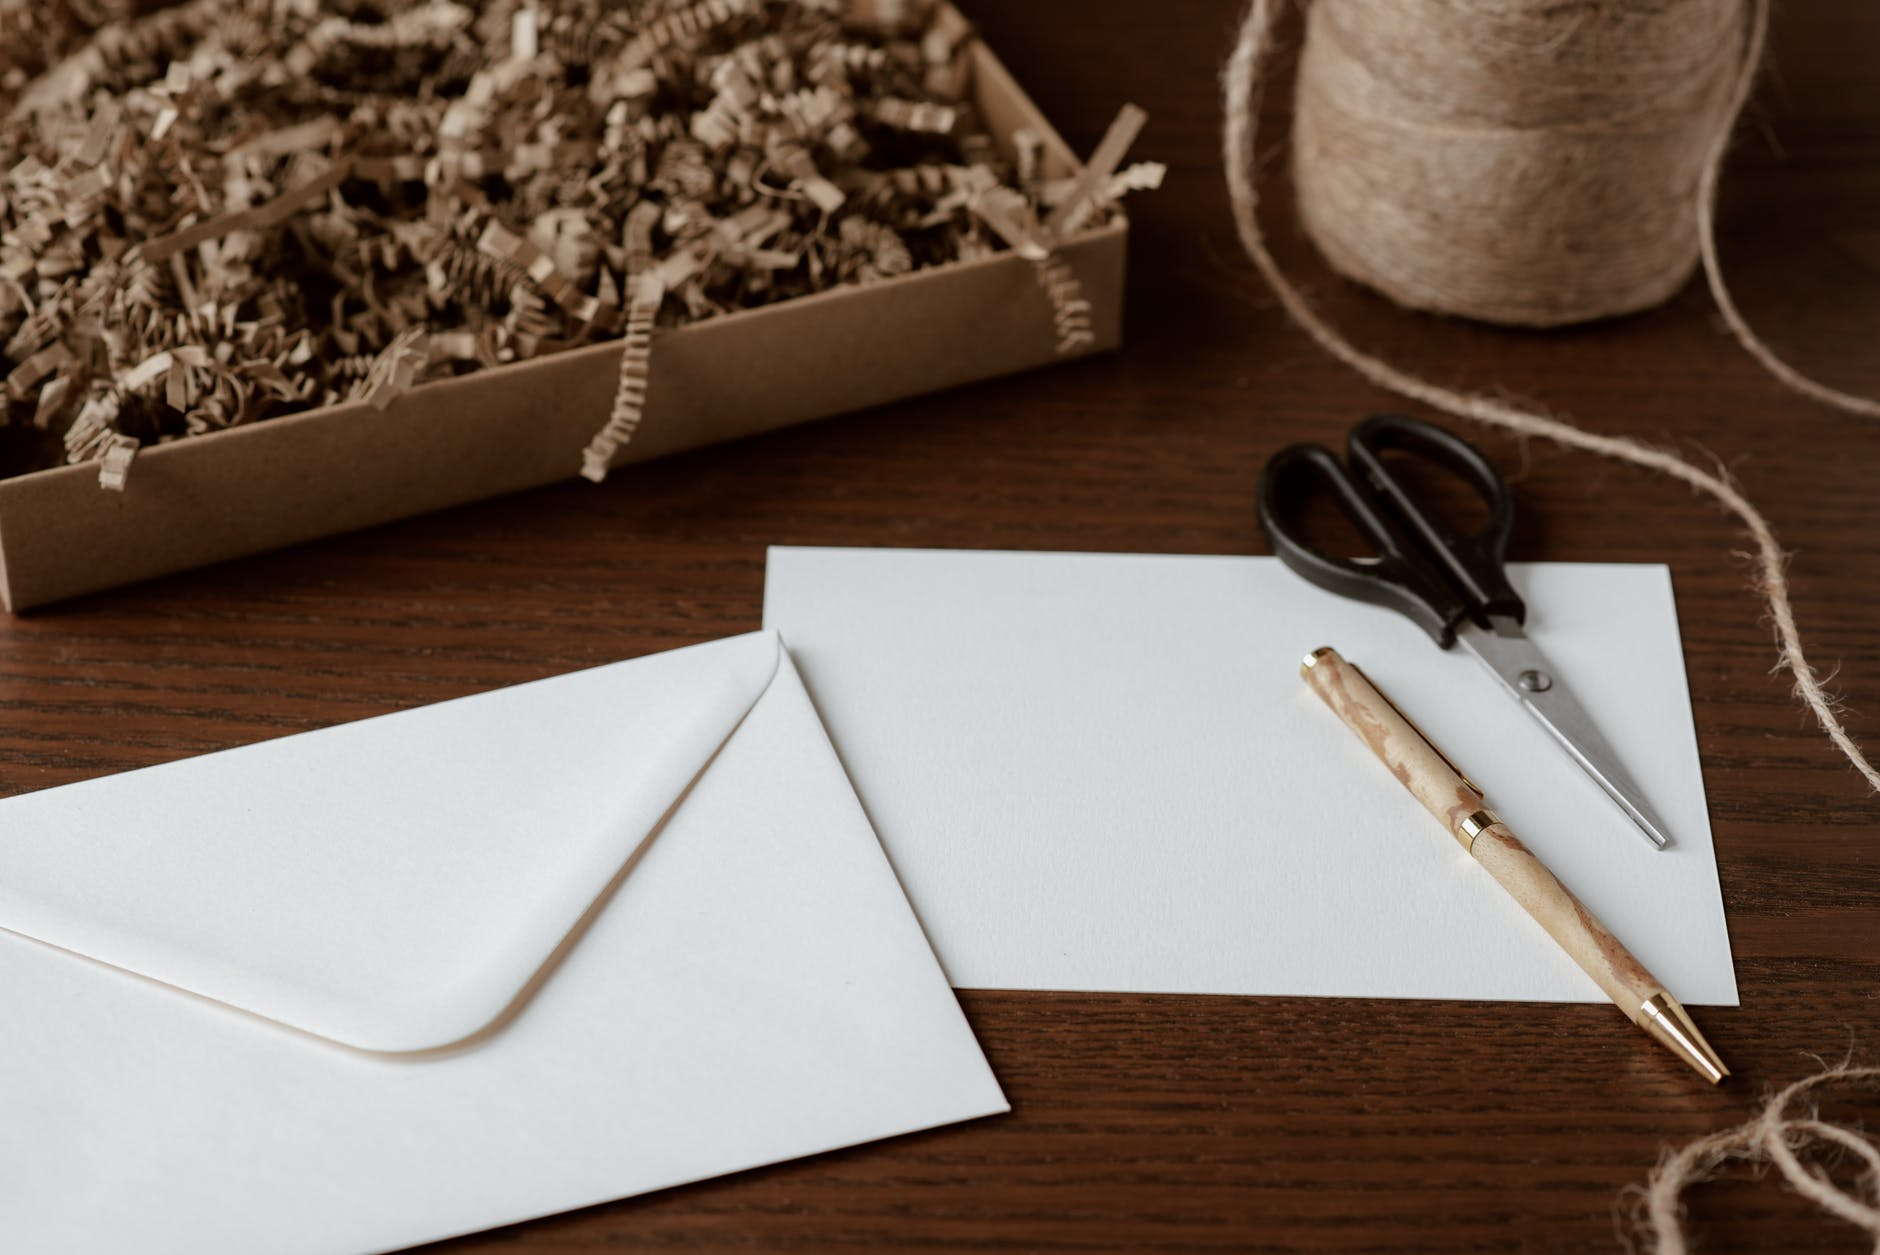 envelope and pen placed on table near tying twine